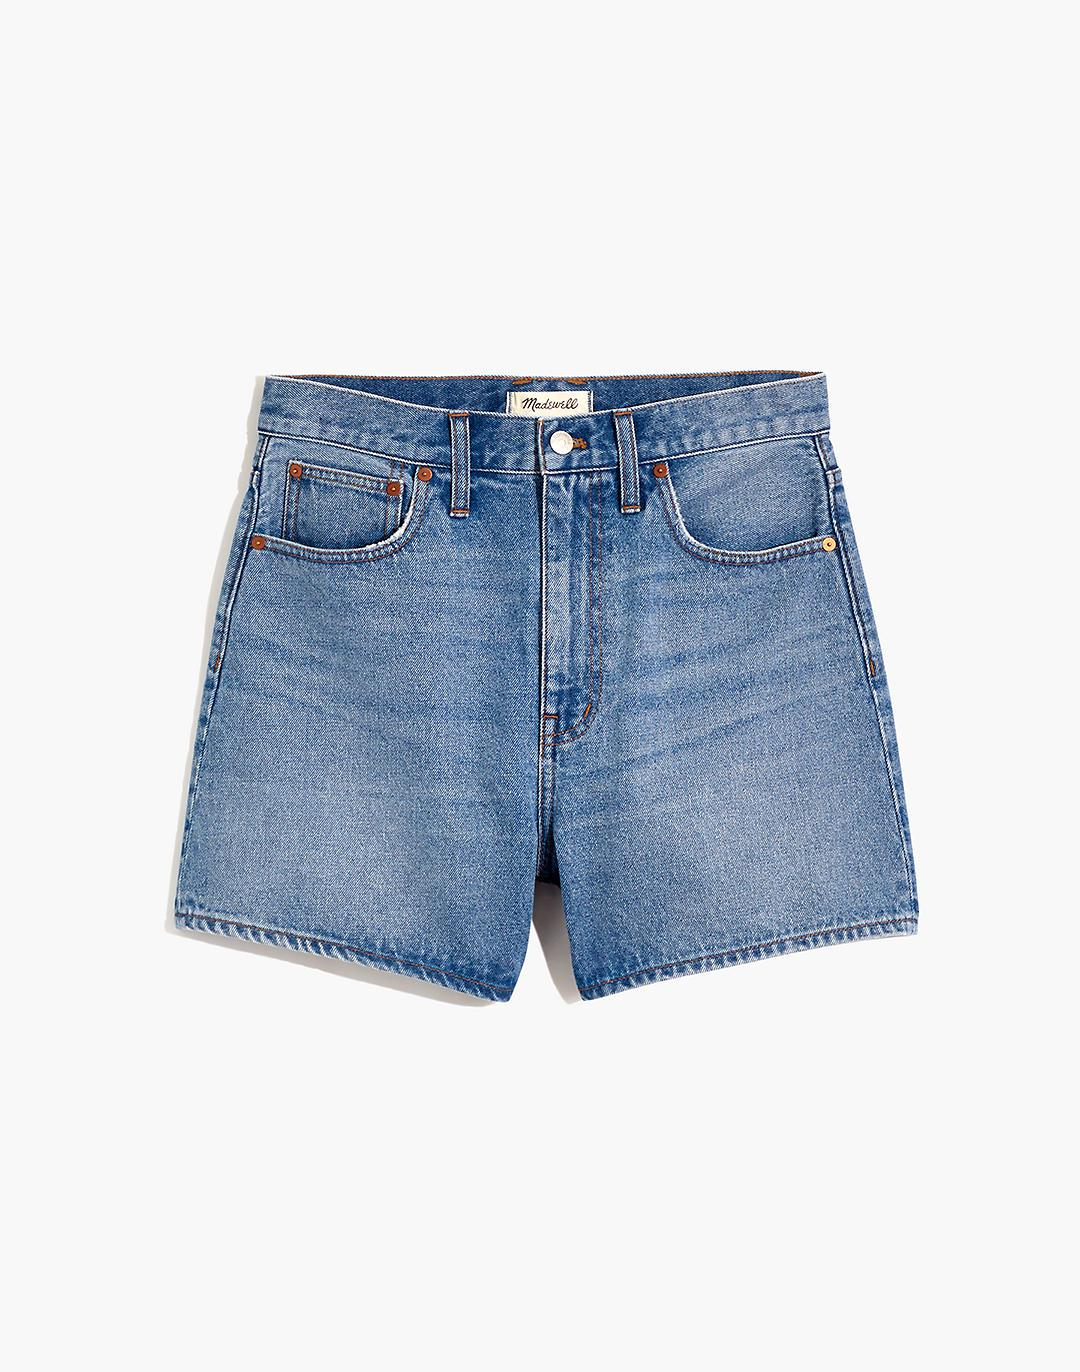 The Momjean Short in Pickway Wash: Retro Edition 3